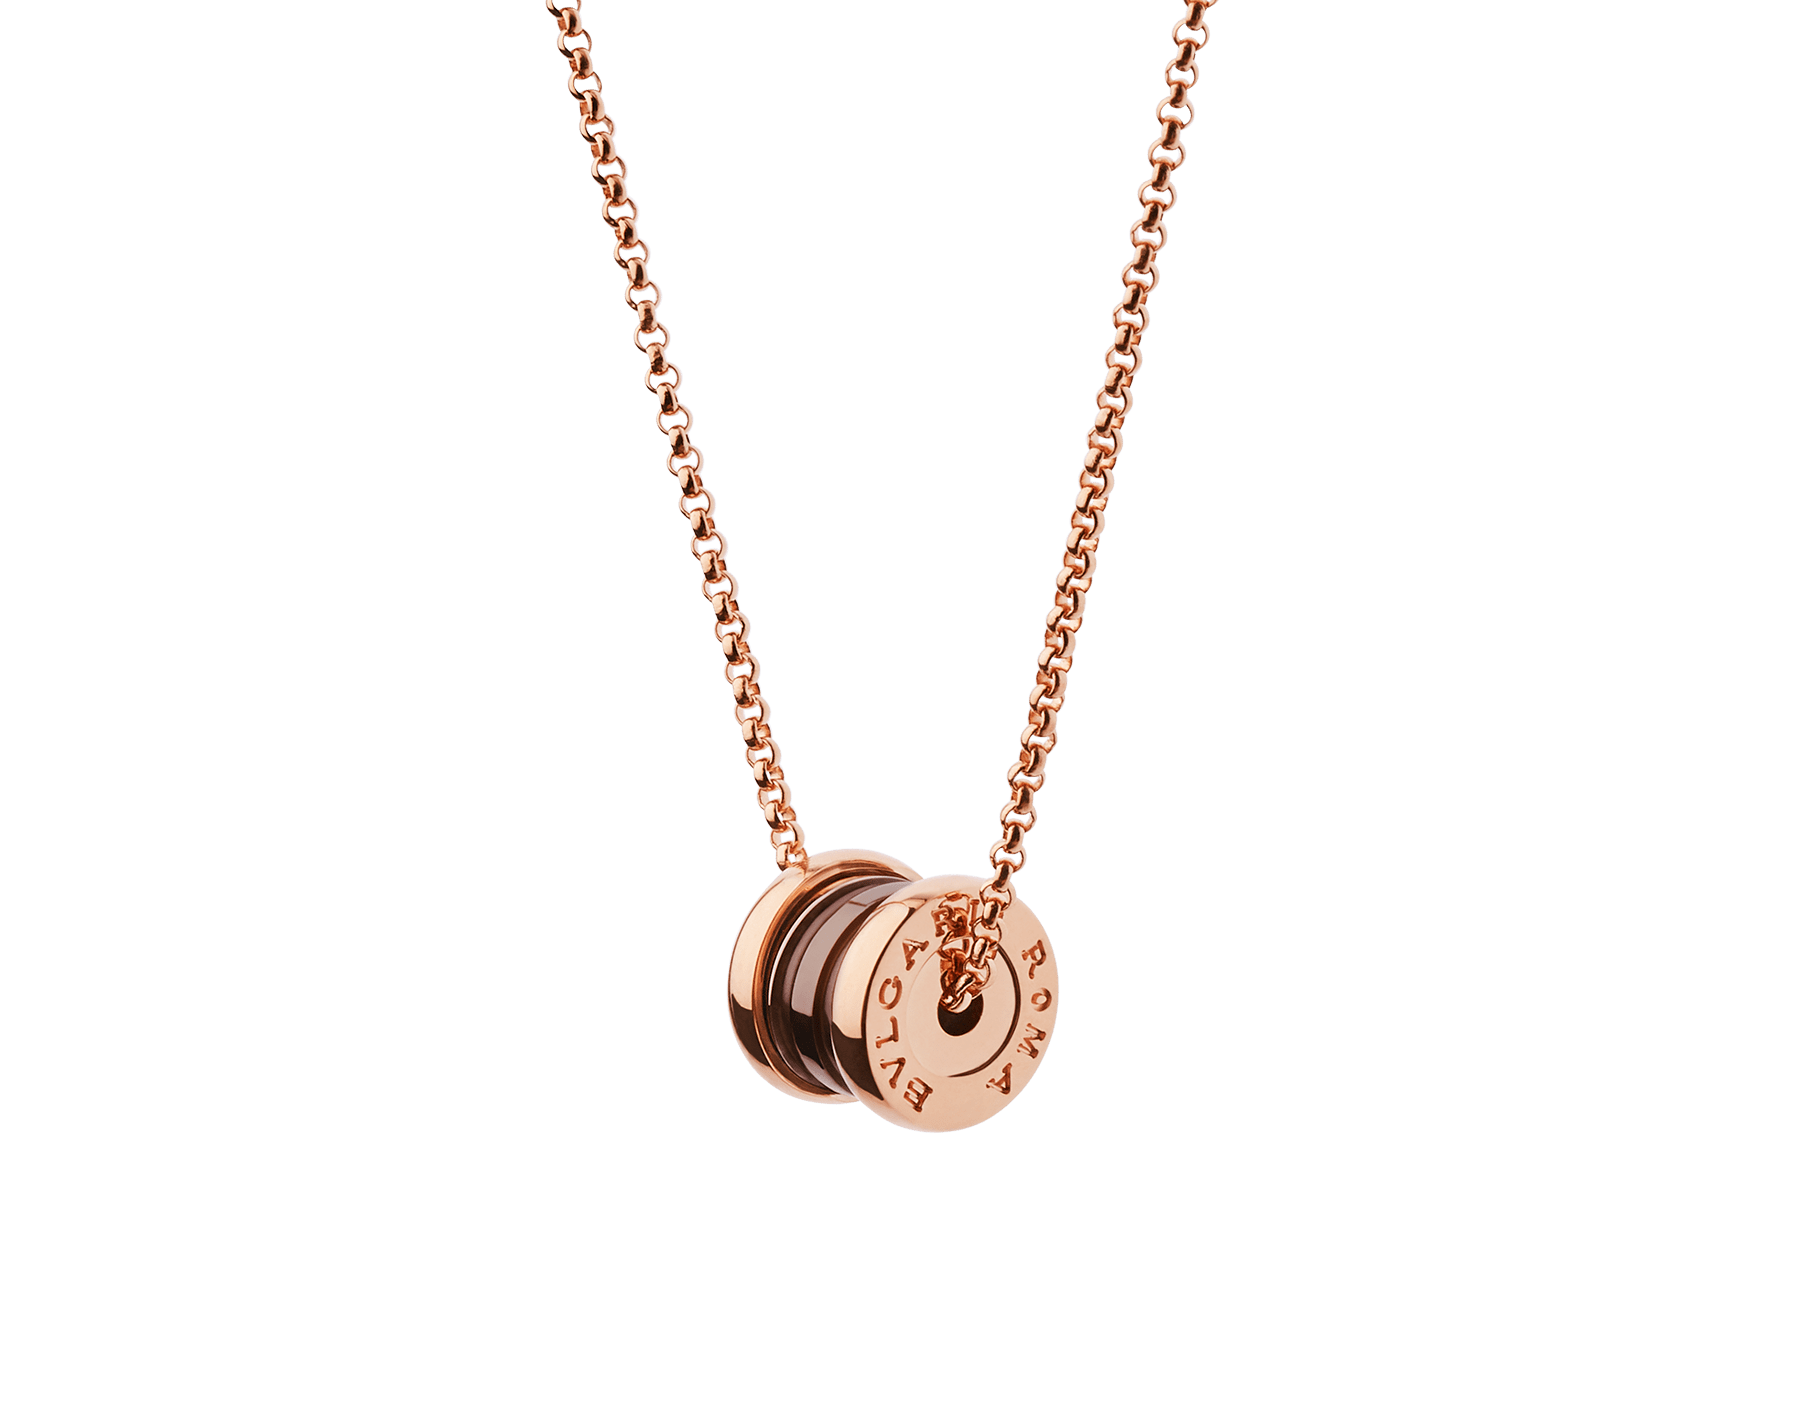 B.zero1 necklace with 18 kt rose gold chain and pendant in 18 kt rose gold and cermet. 353004 image 1